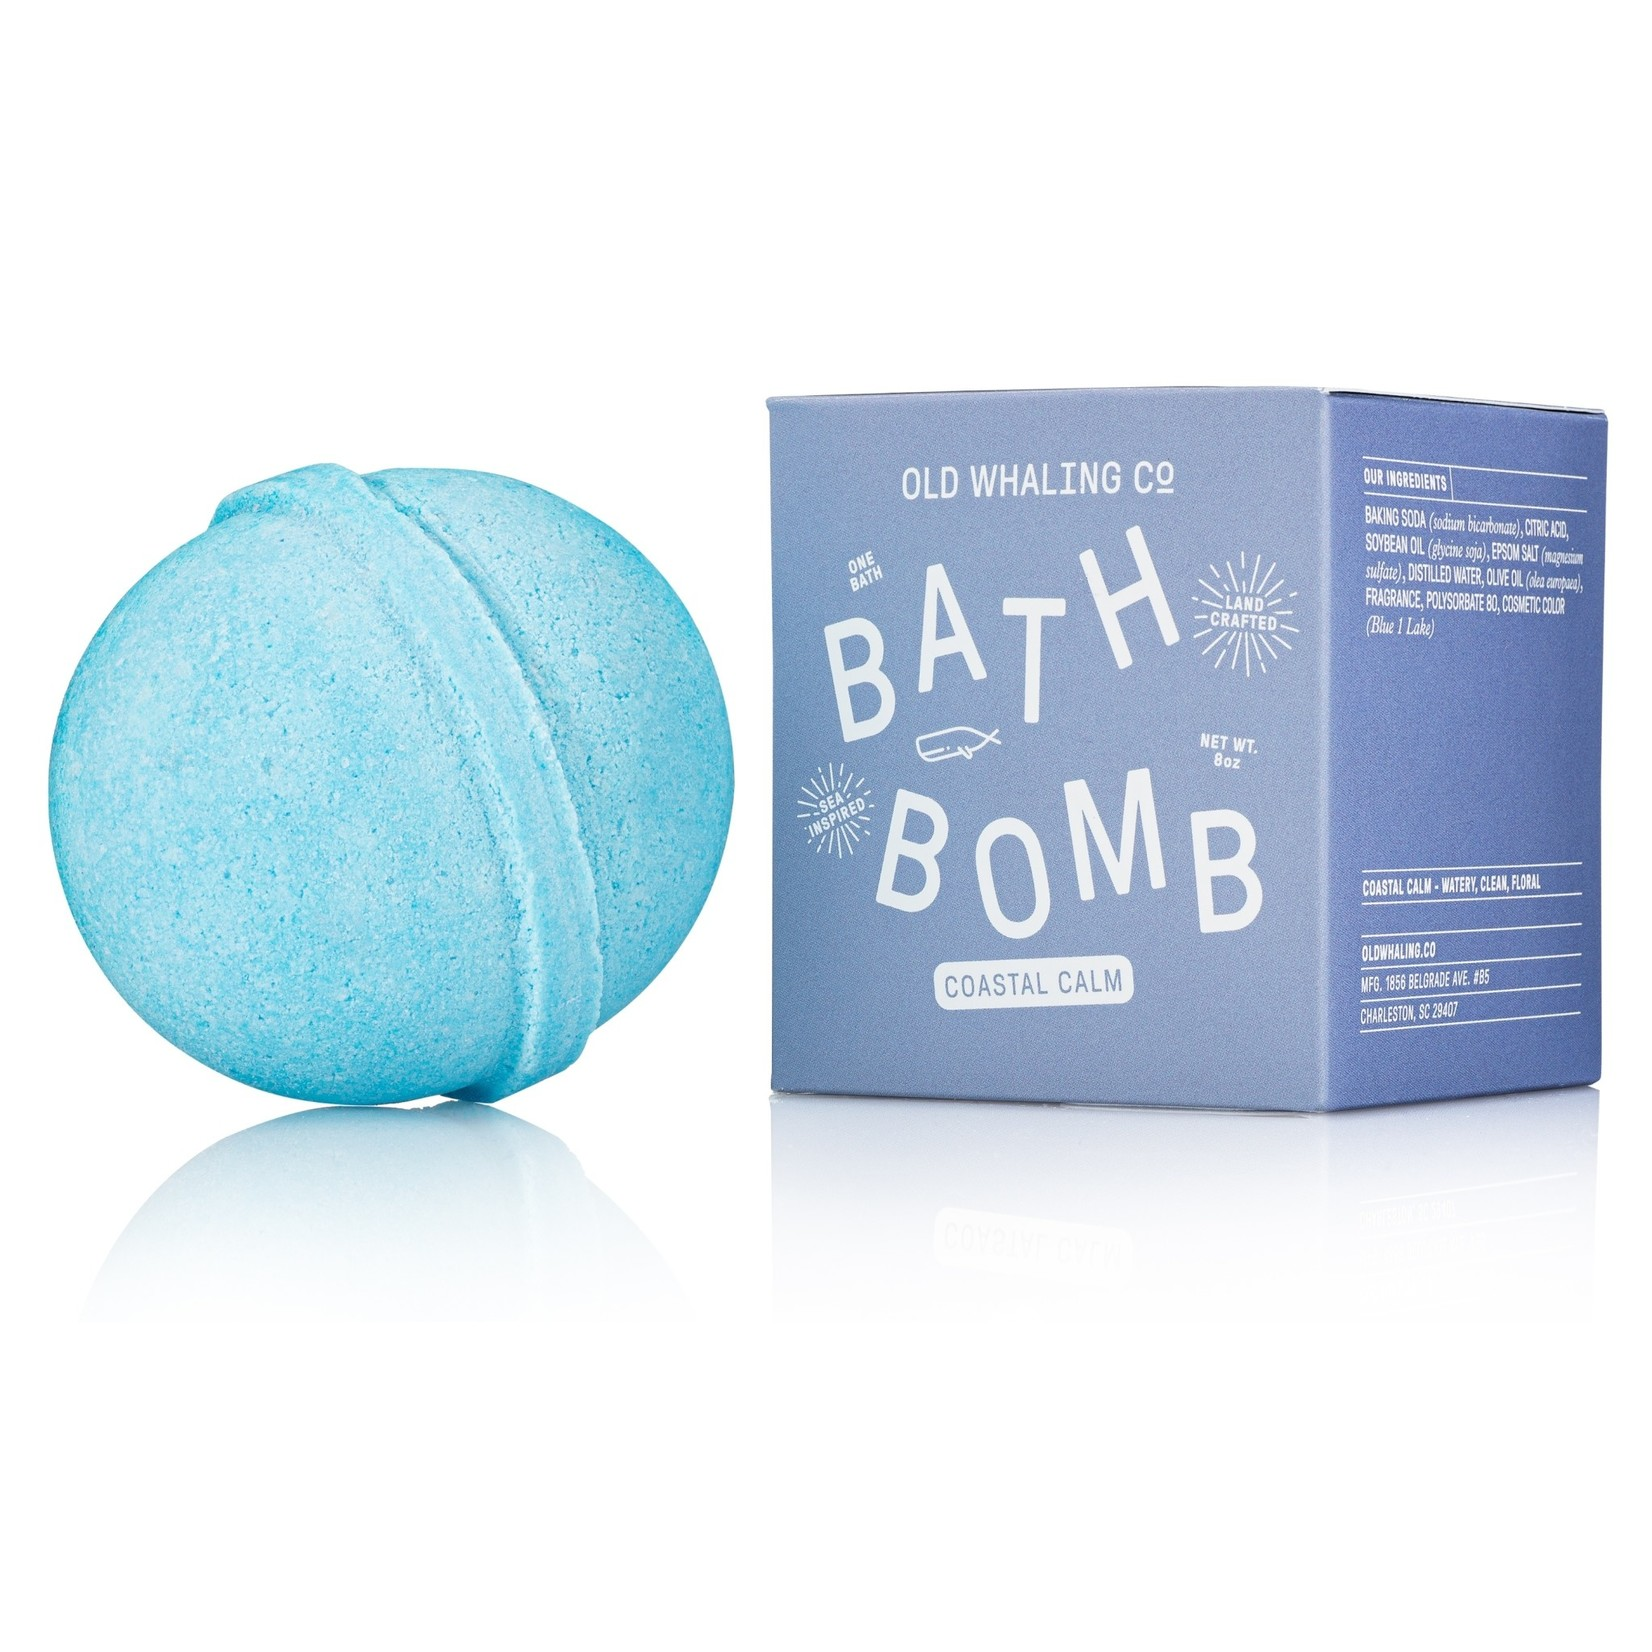 Old Whaling Company Old Whaling Company Bath Bomb Coastal Calm